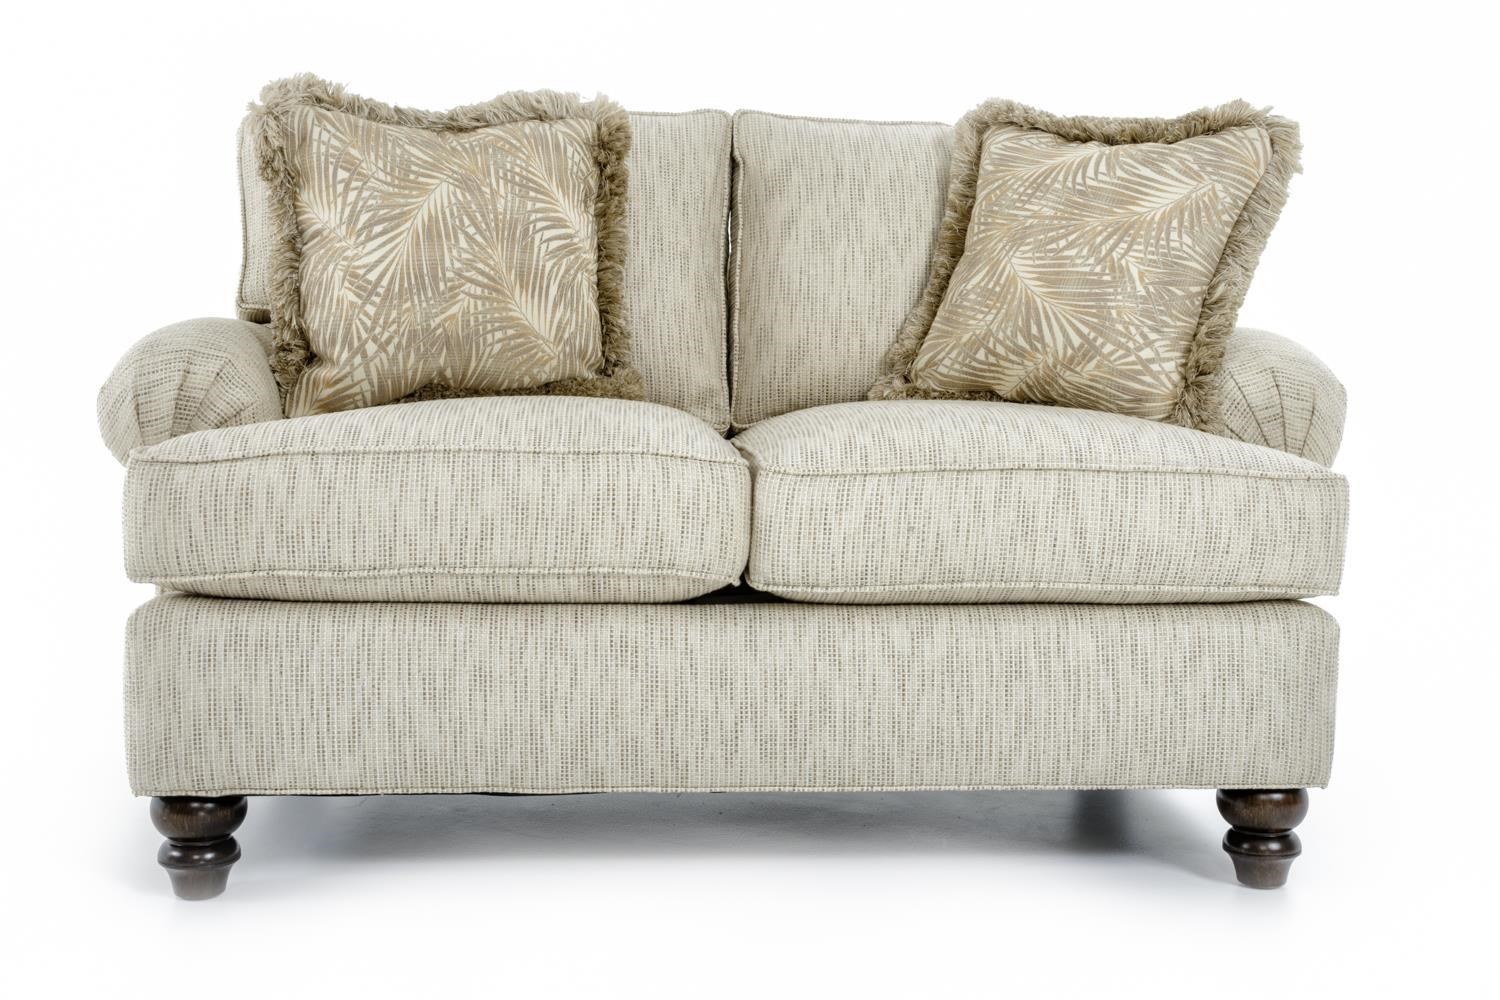 Drexel Heritage® Drexel Heritage Upholstery Holloway Loveseat - Item Number: D70-LS